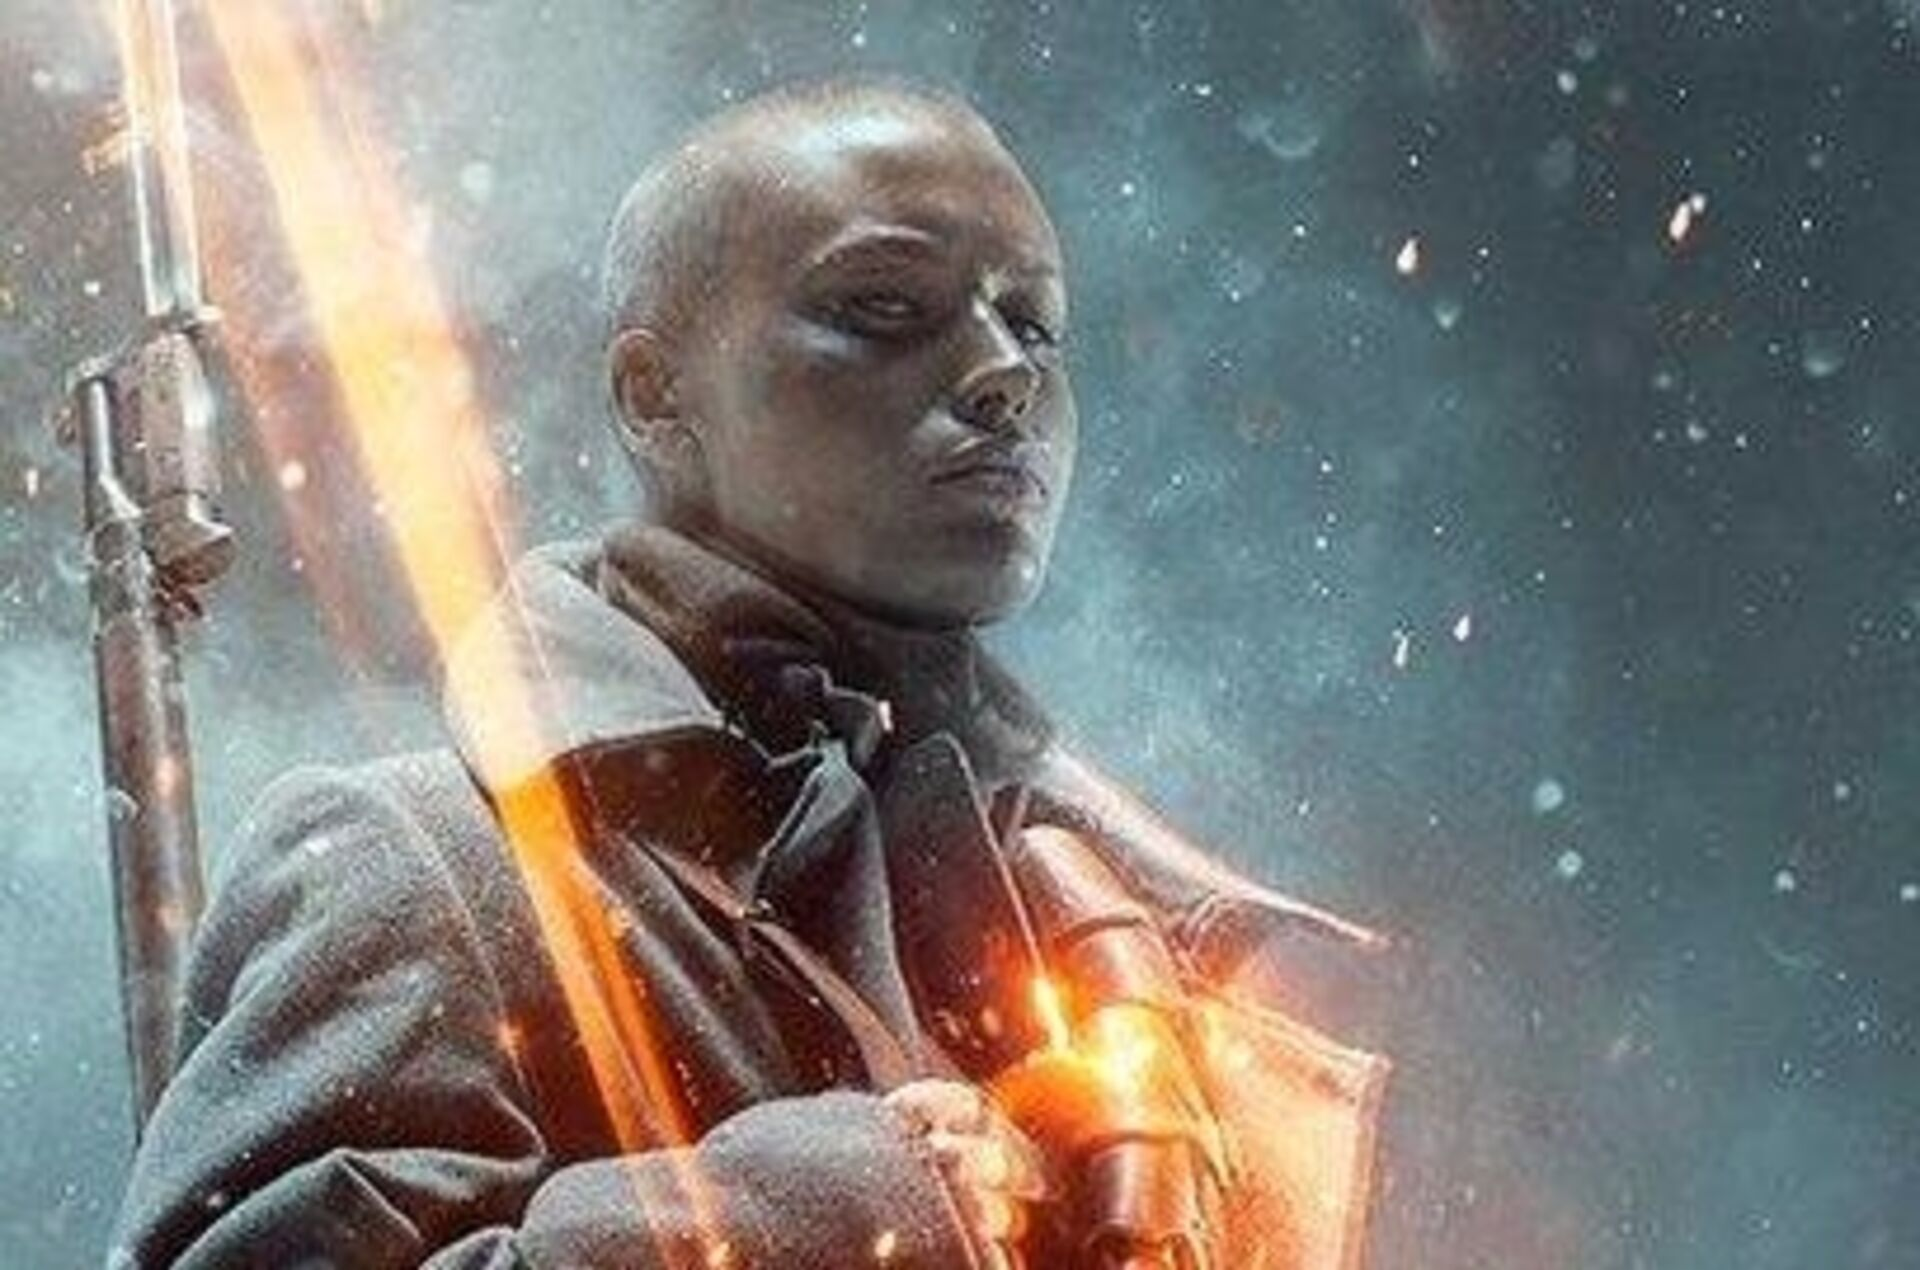 battlefield 1 announces first